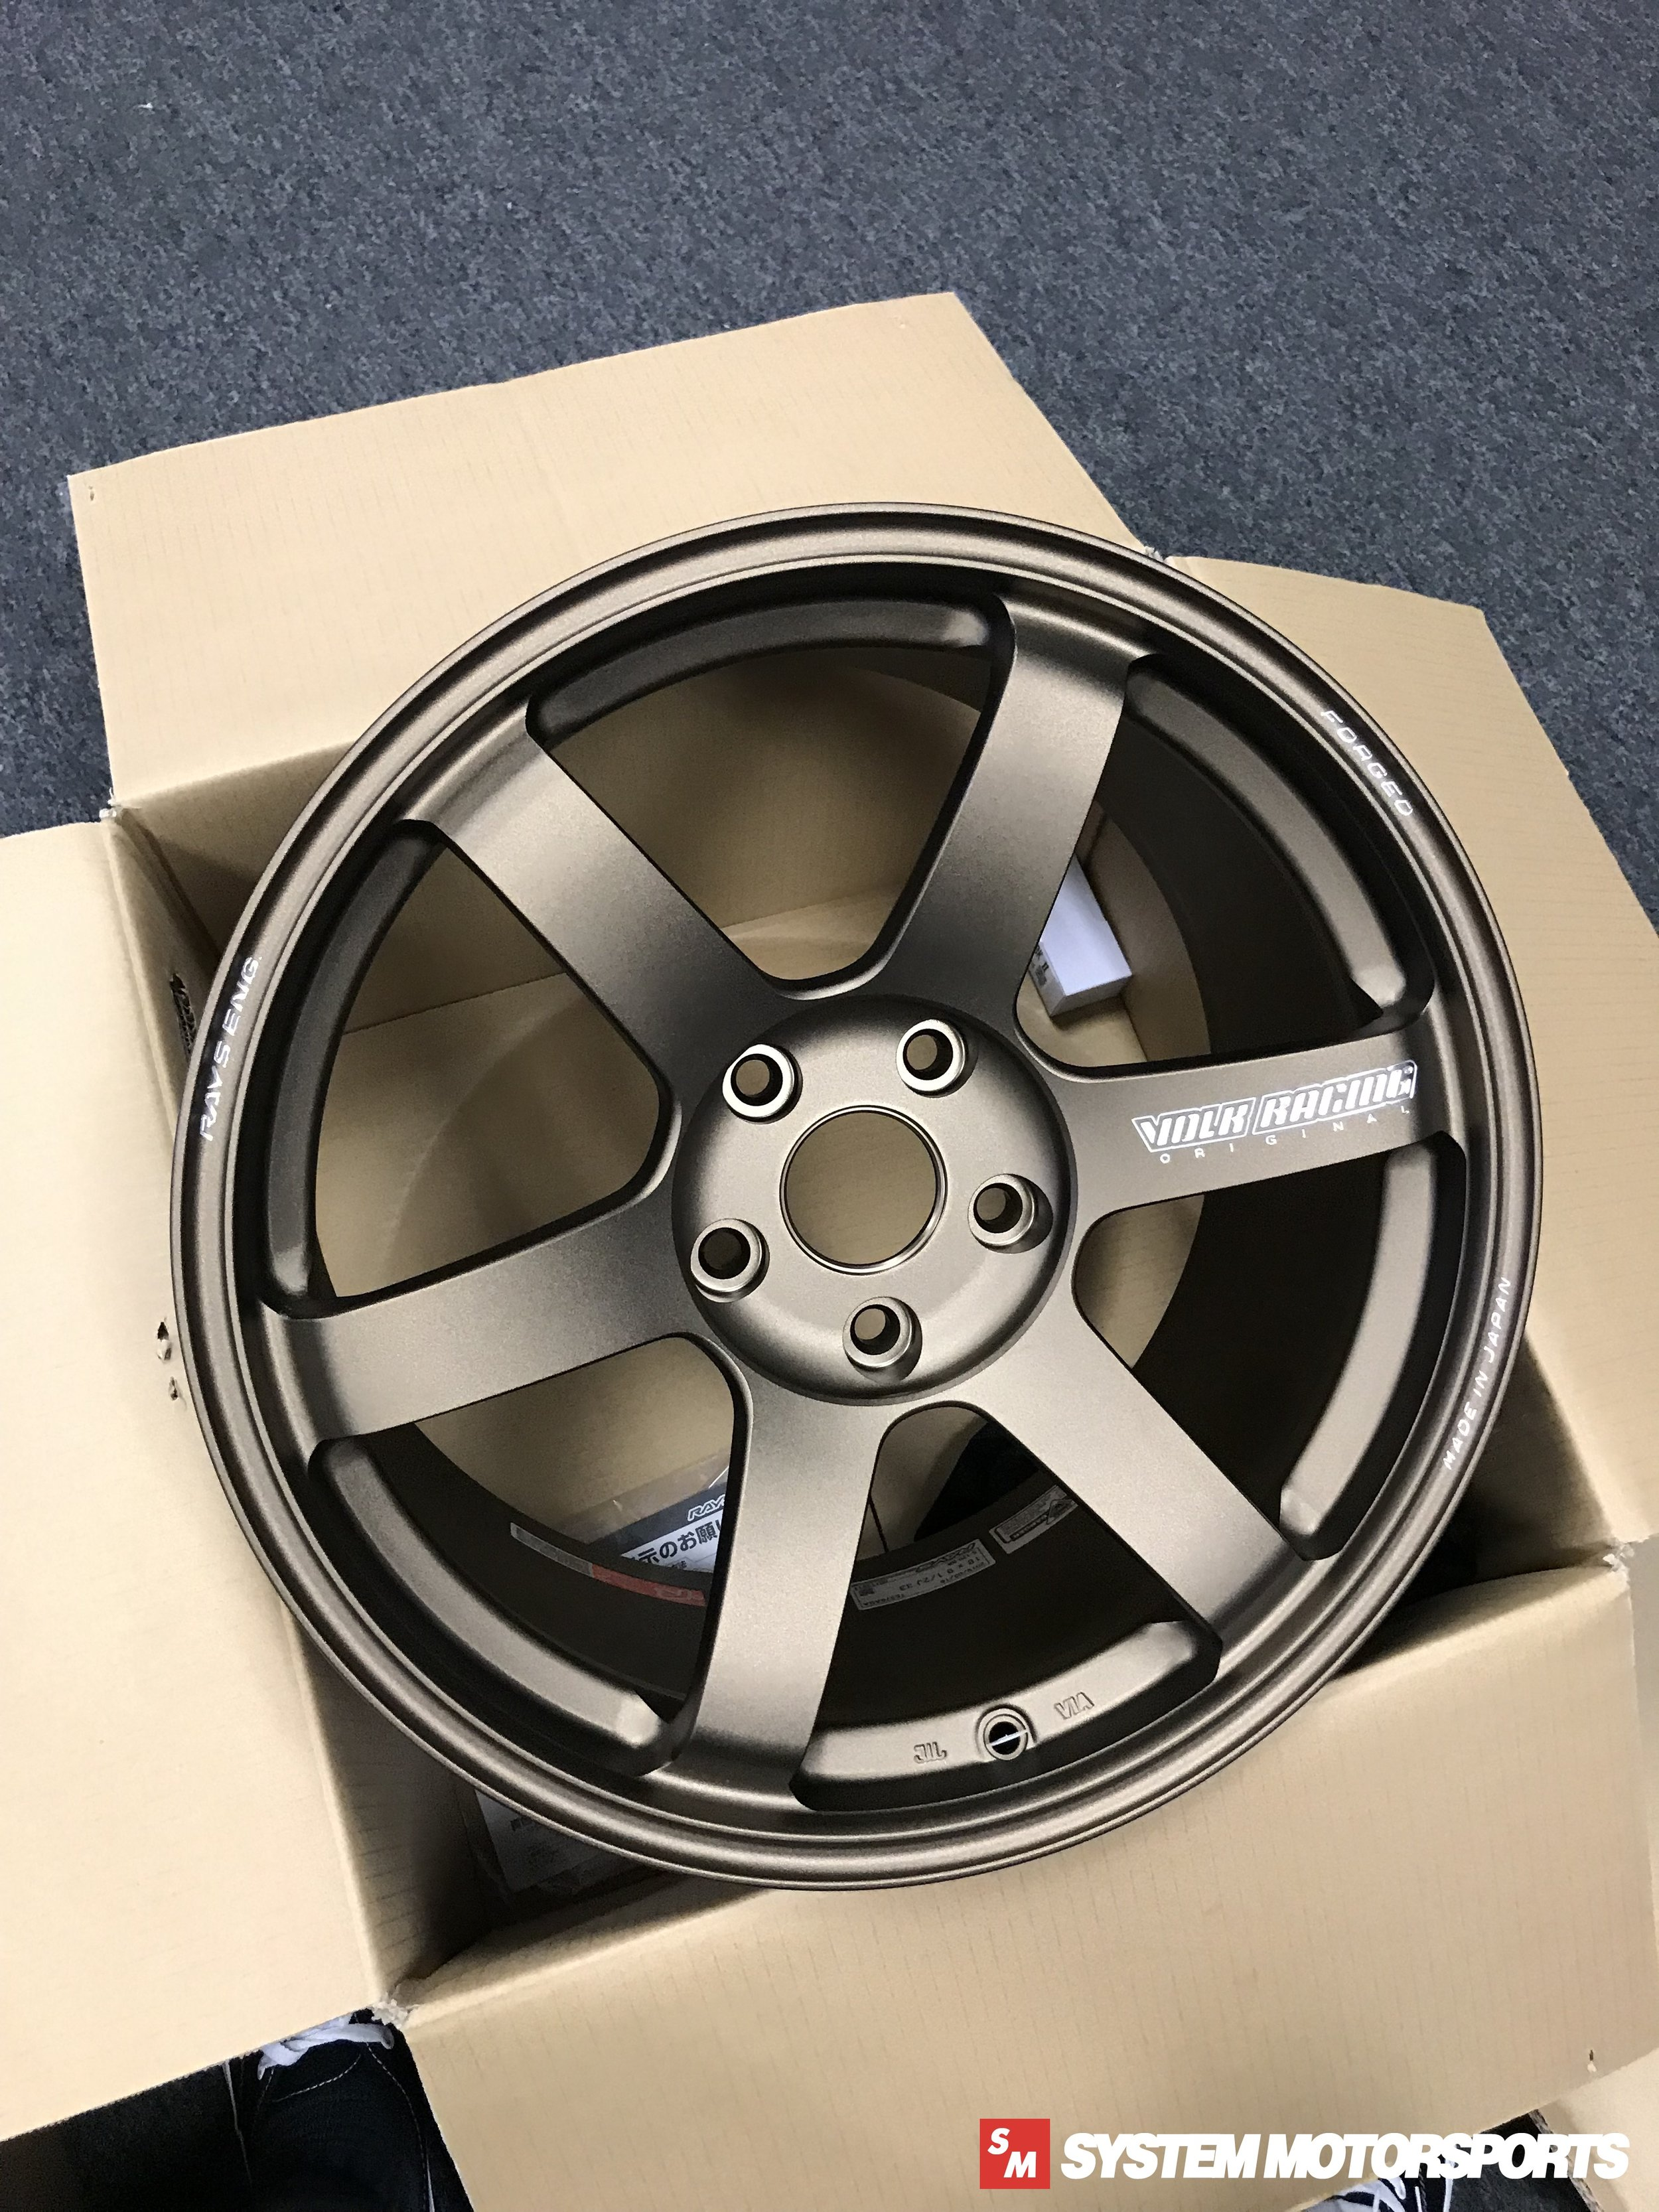 TE37 Saga in Face-4 Concavity (Max Concave) in an 18x9.5 configuration for the FK8 Civic Type R Platform